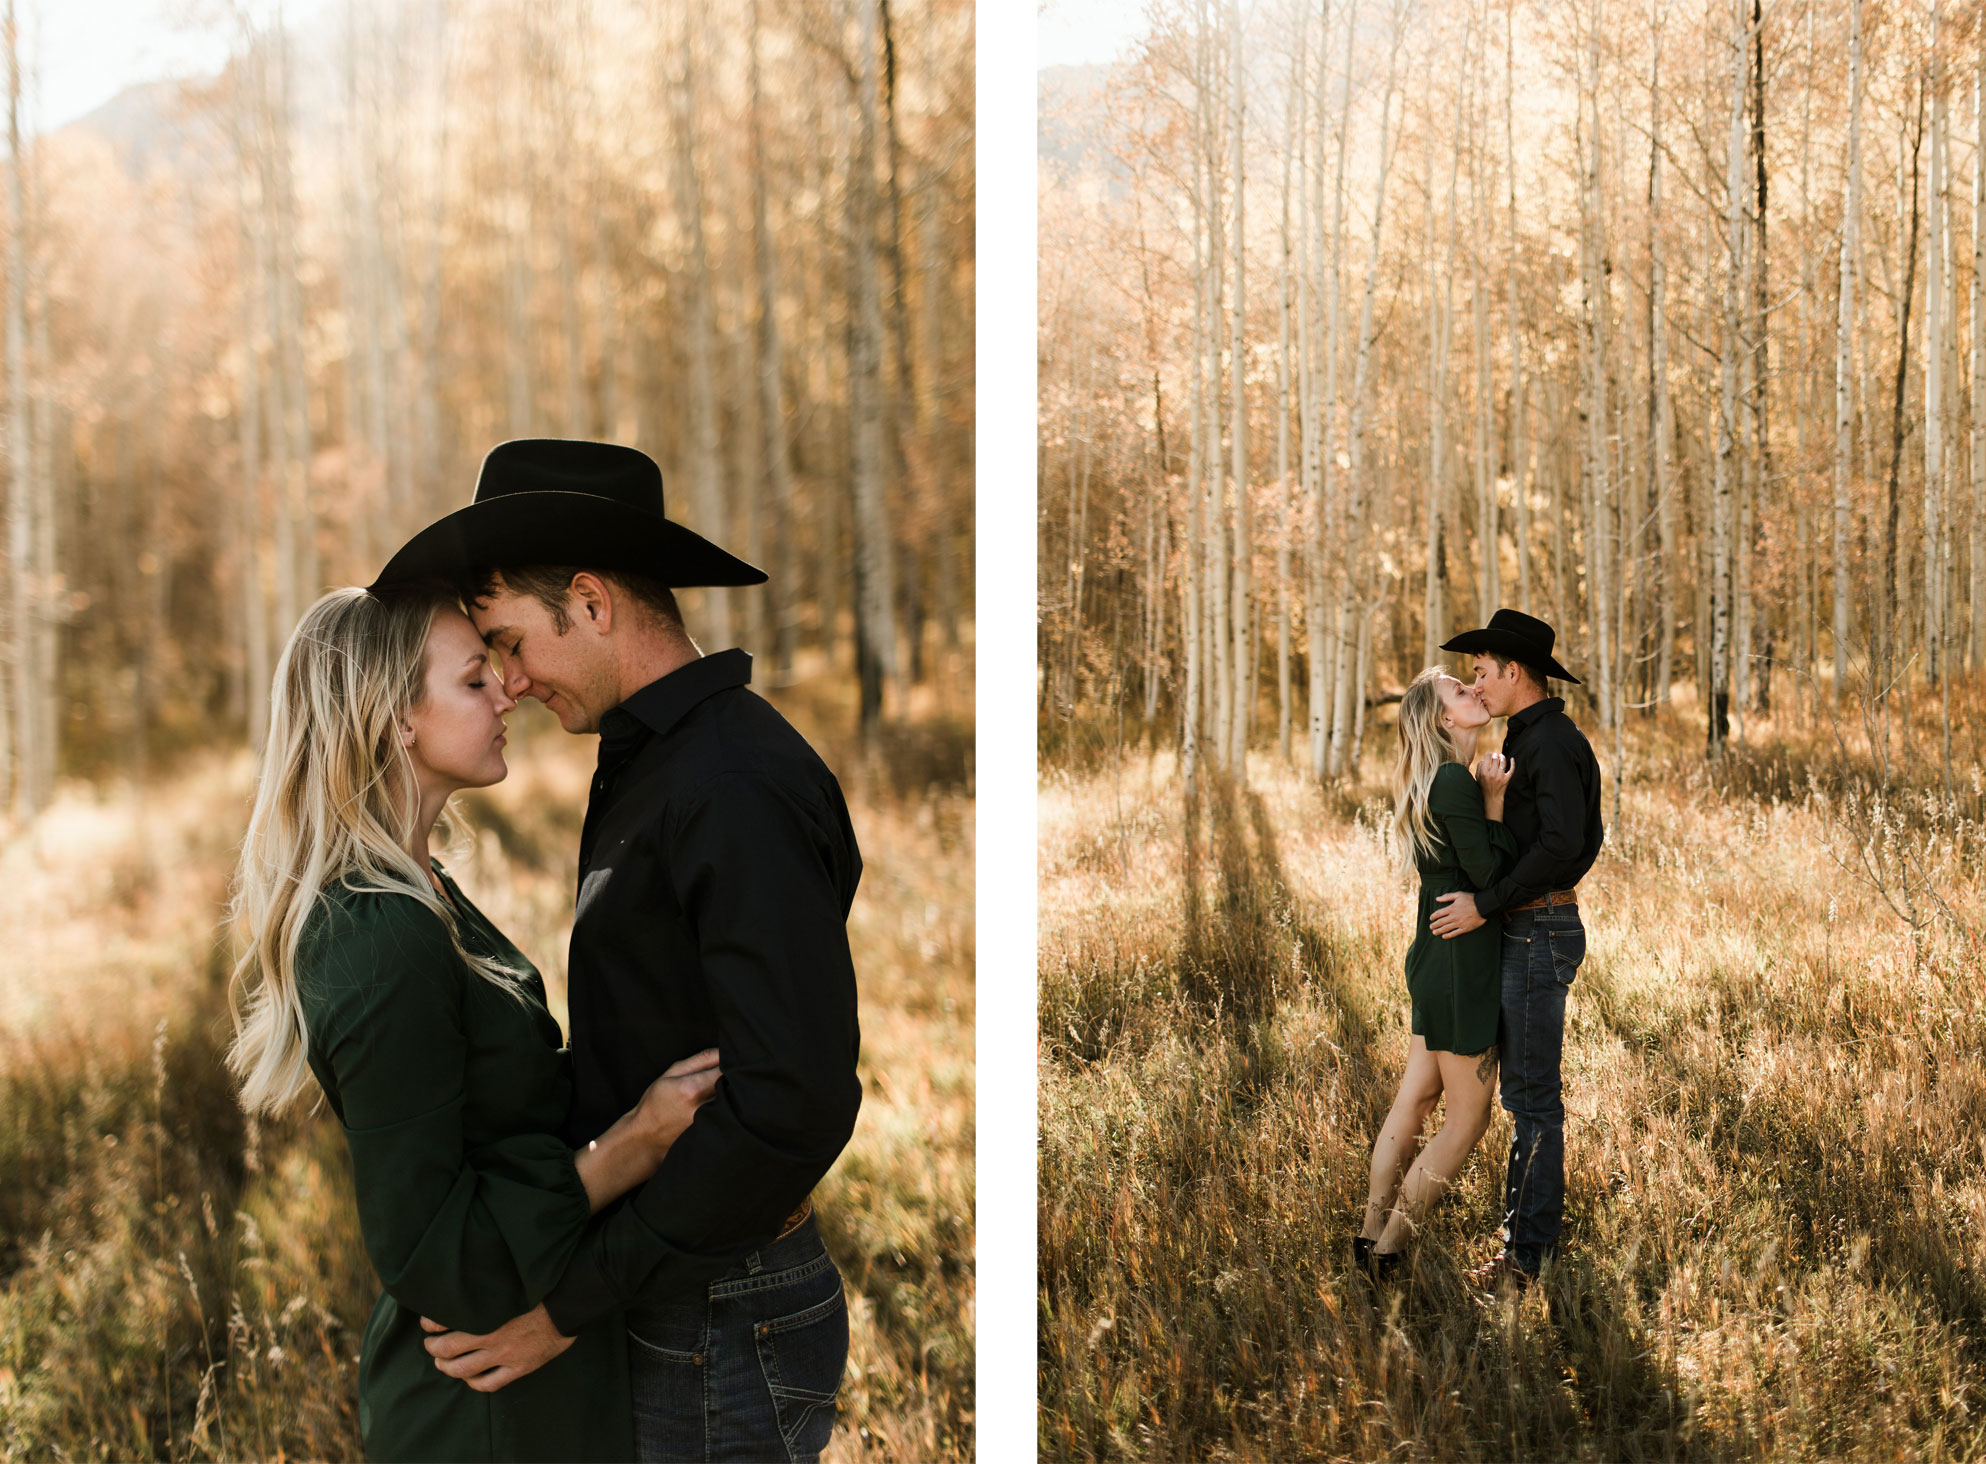 An Autumn Photo Session in the aspens in Durango, Colorado